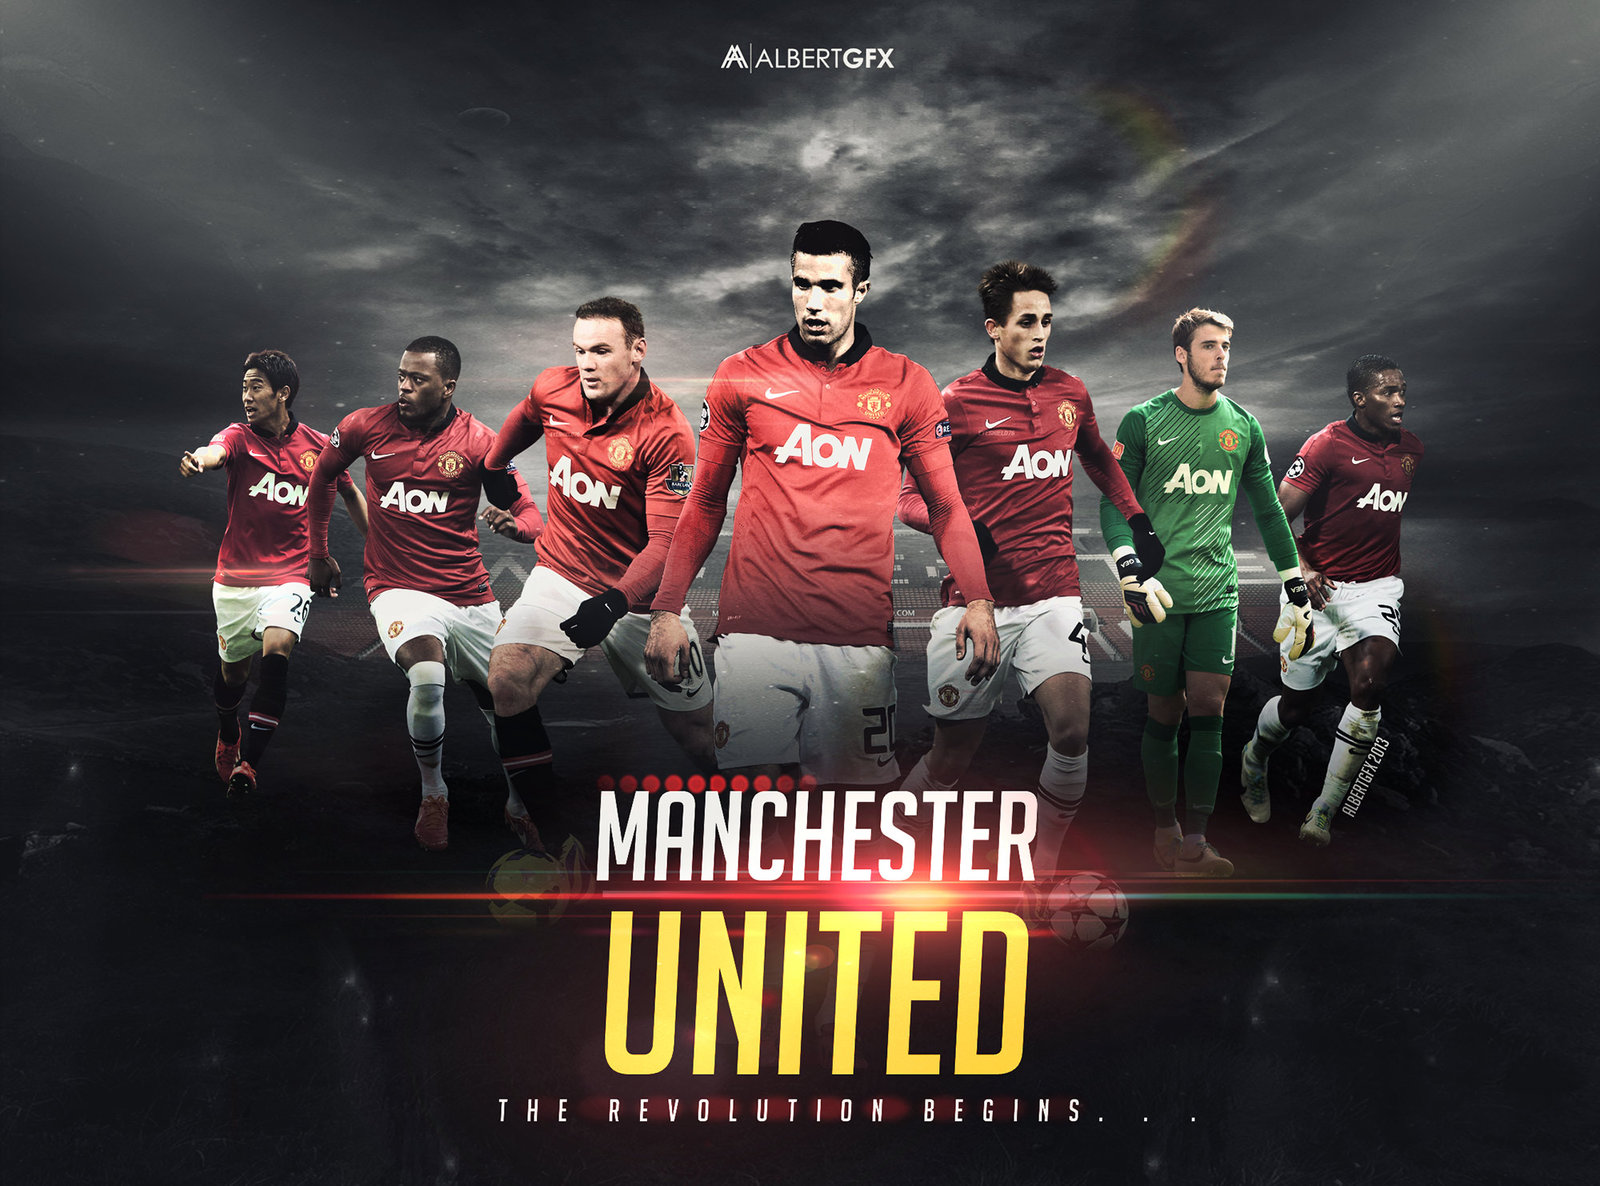 Manchester United Manchester United Wallpaper 1600x1186